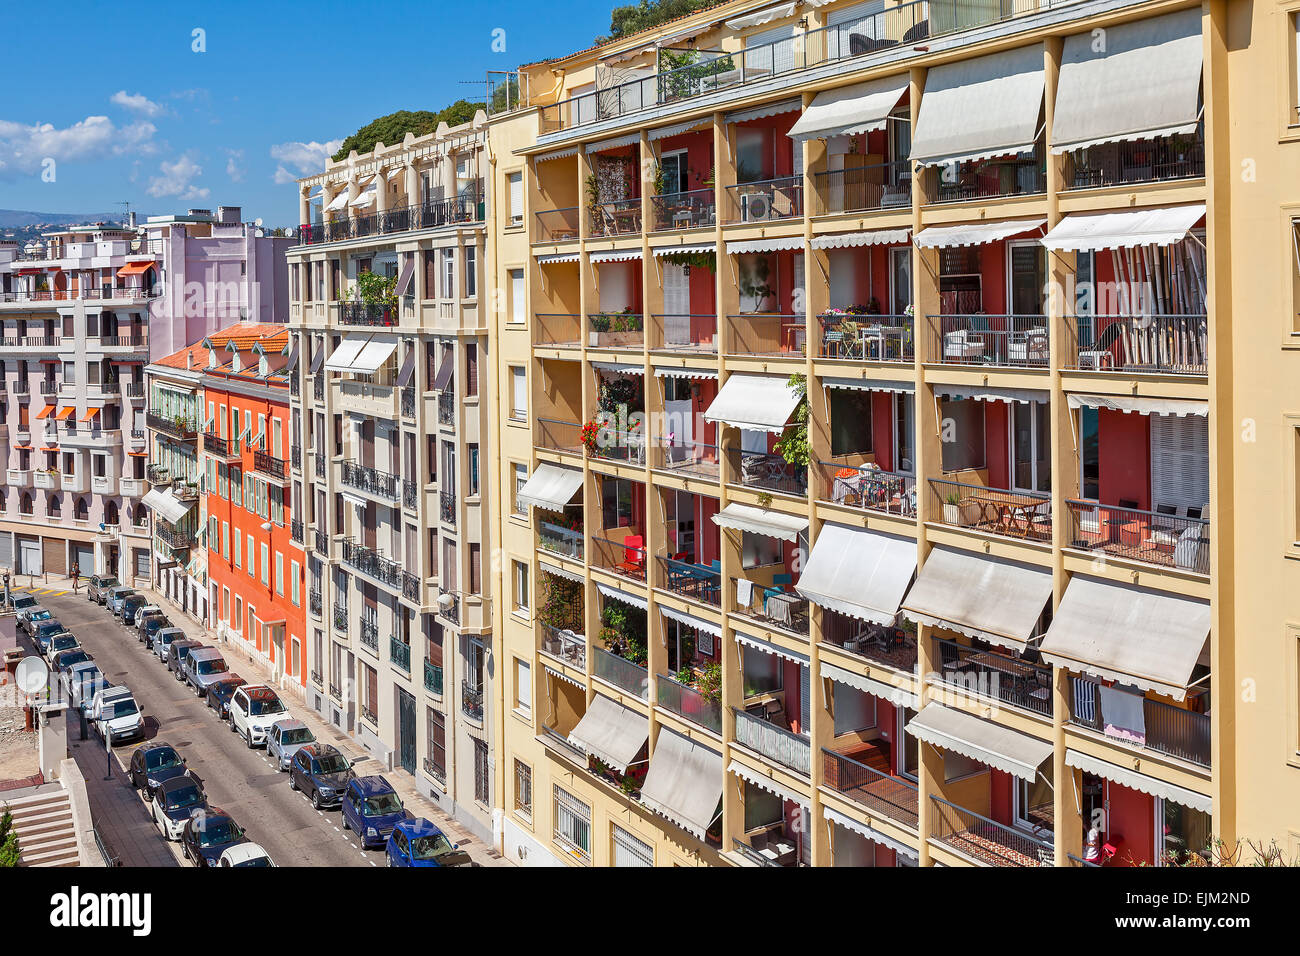 View of colorful apartment buildings in Nice, France. - Stock Image